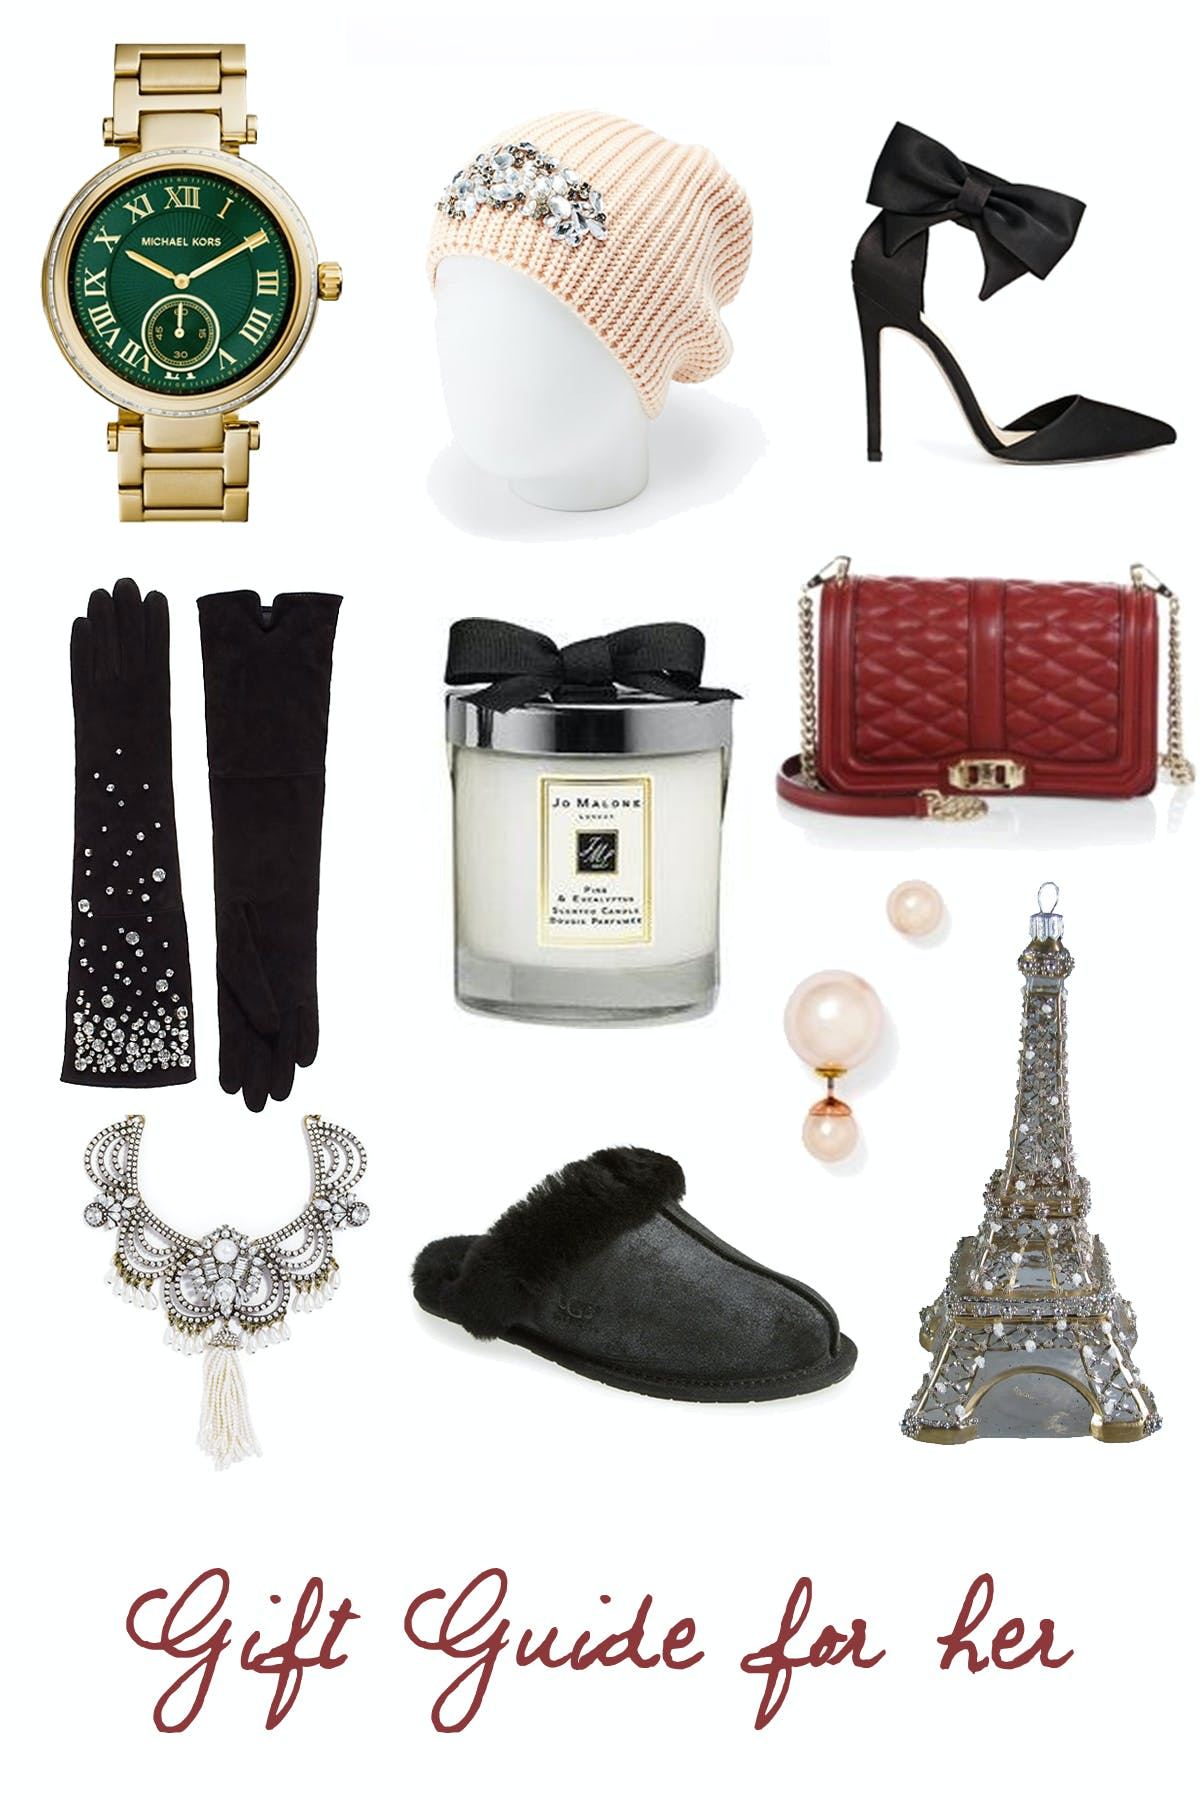 Top 10 Christmas 2014 gift ideas for her